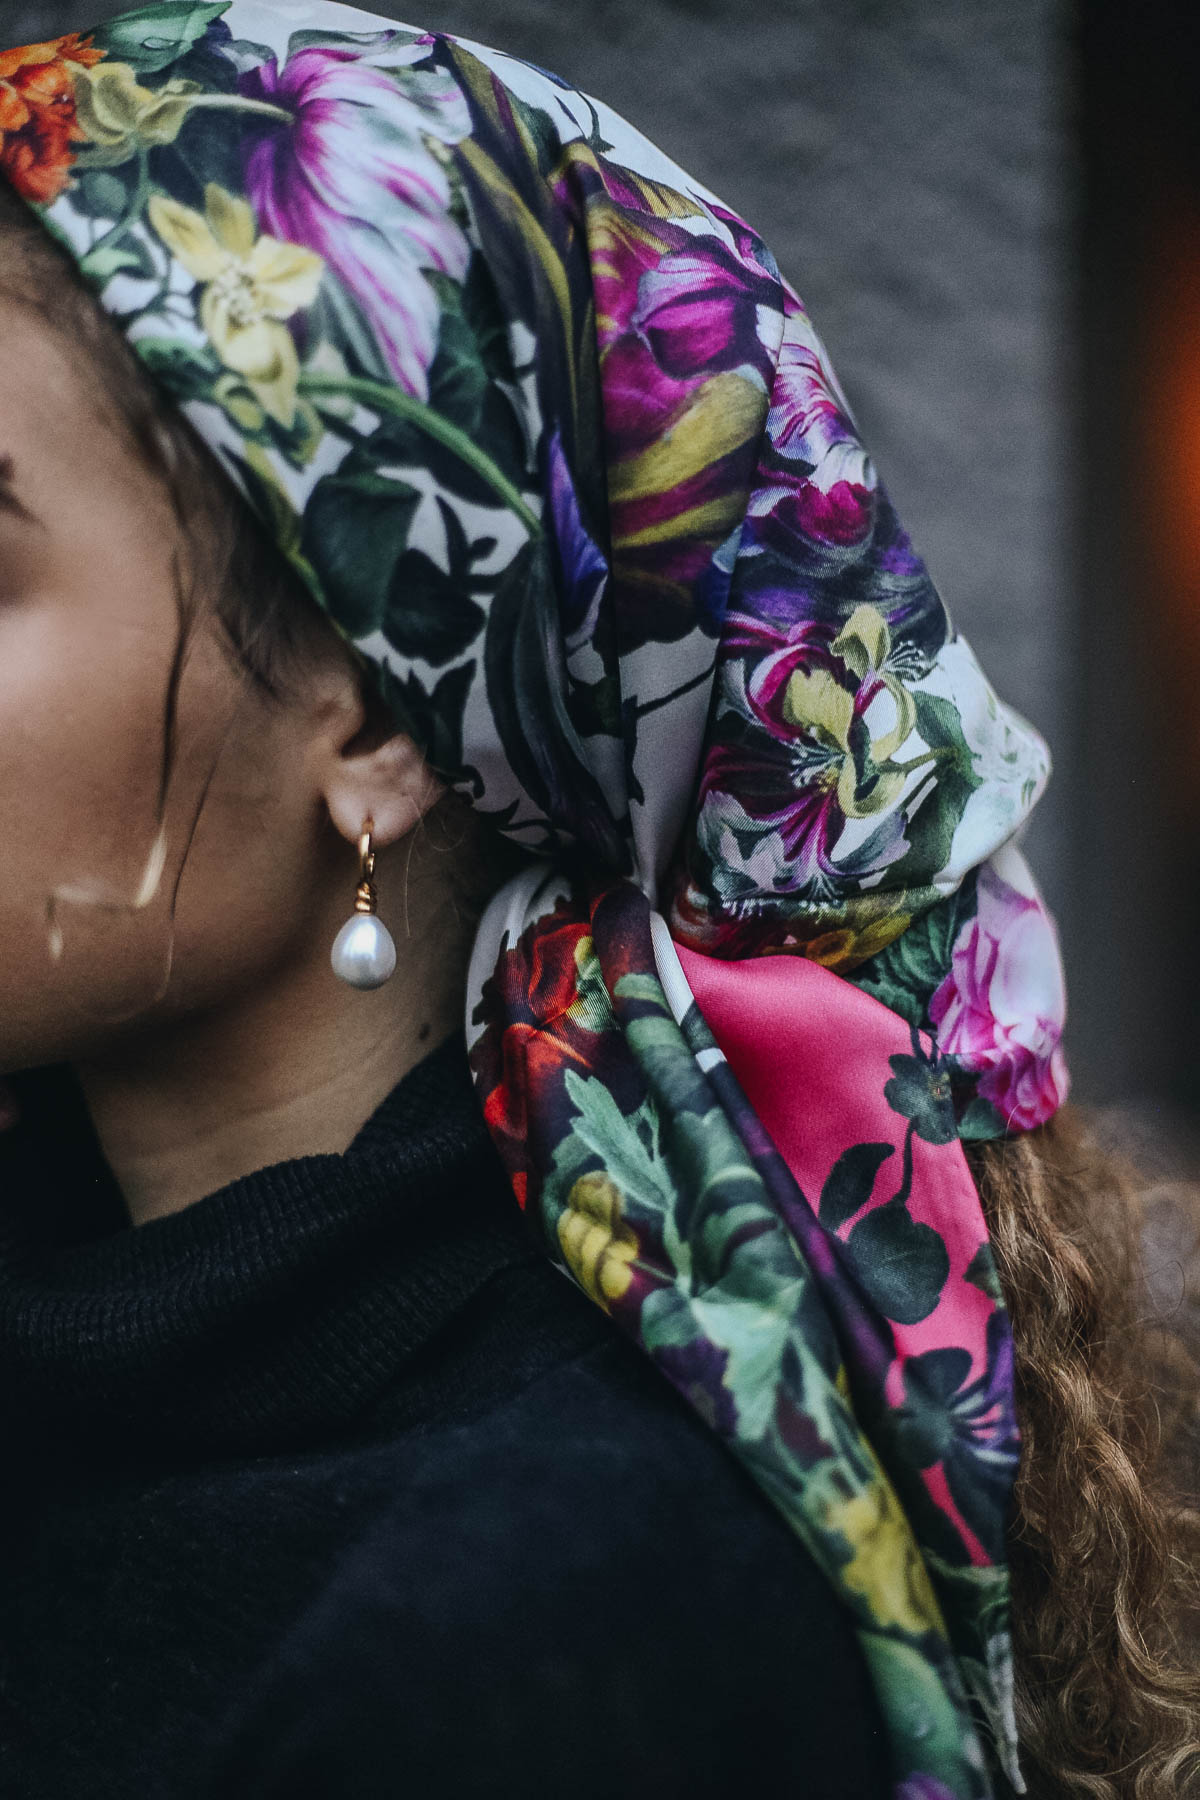 Silk scarf in hair with dainty pearl earrings. A chic and classy parisian french style look!